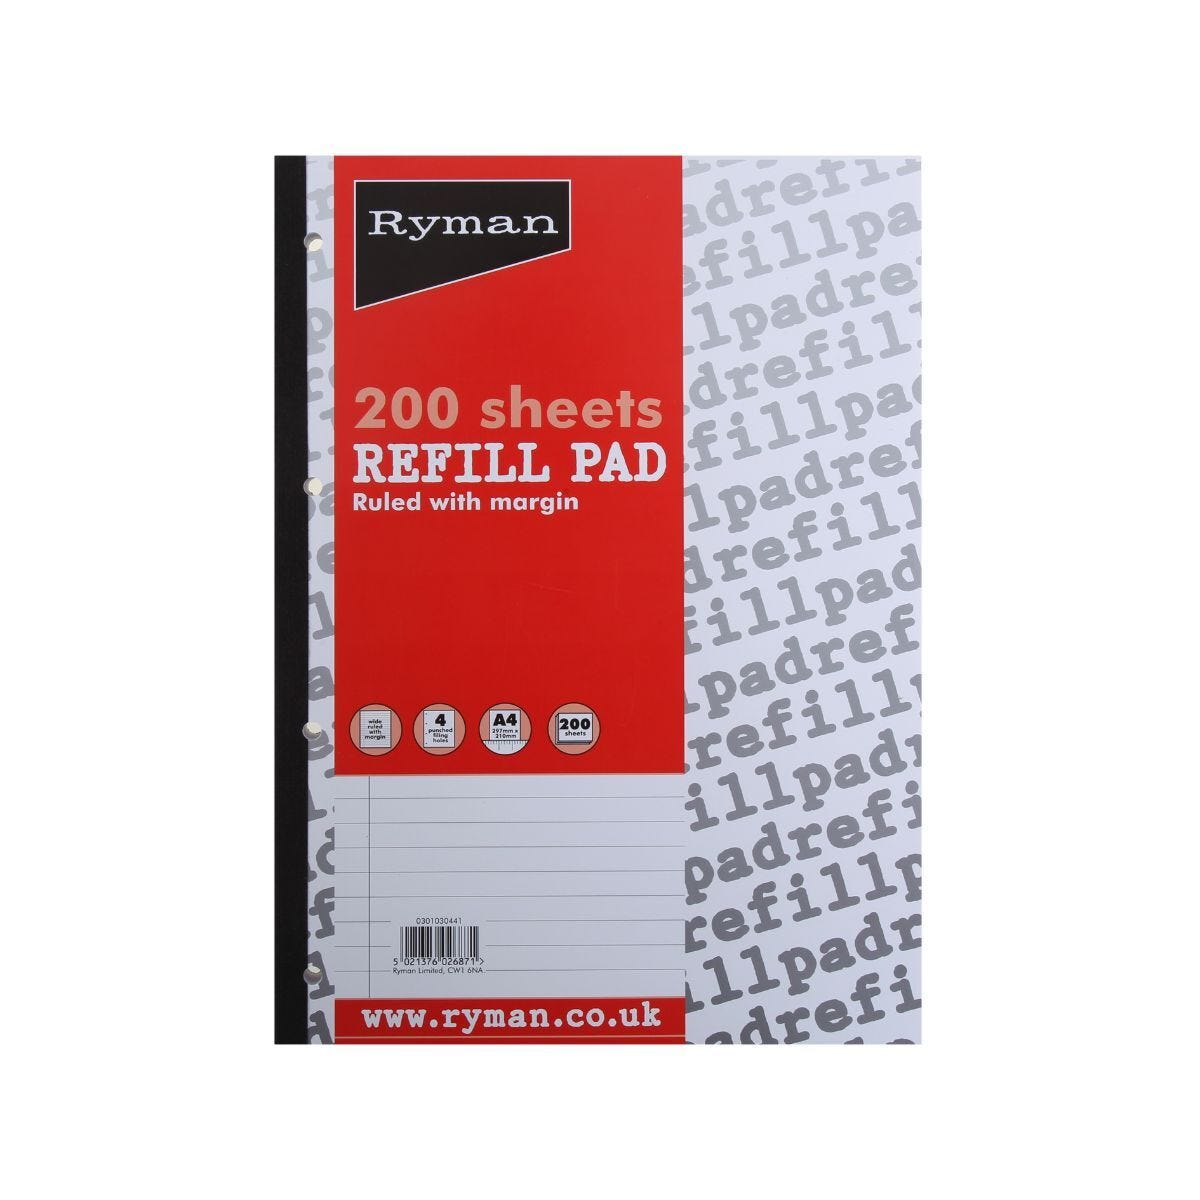 Ryman Refill Pad A4 Ruled With Wide Margin 400 Pages 200 Sheets